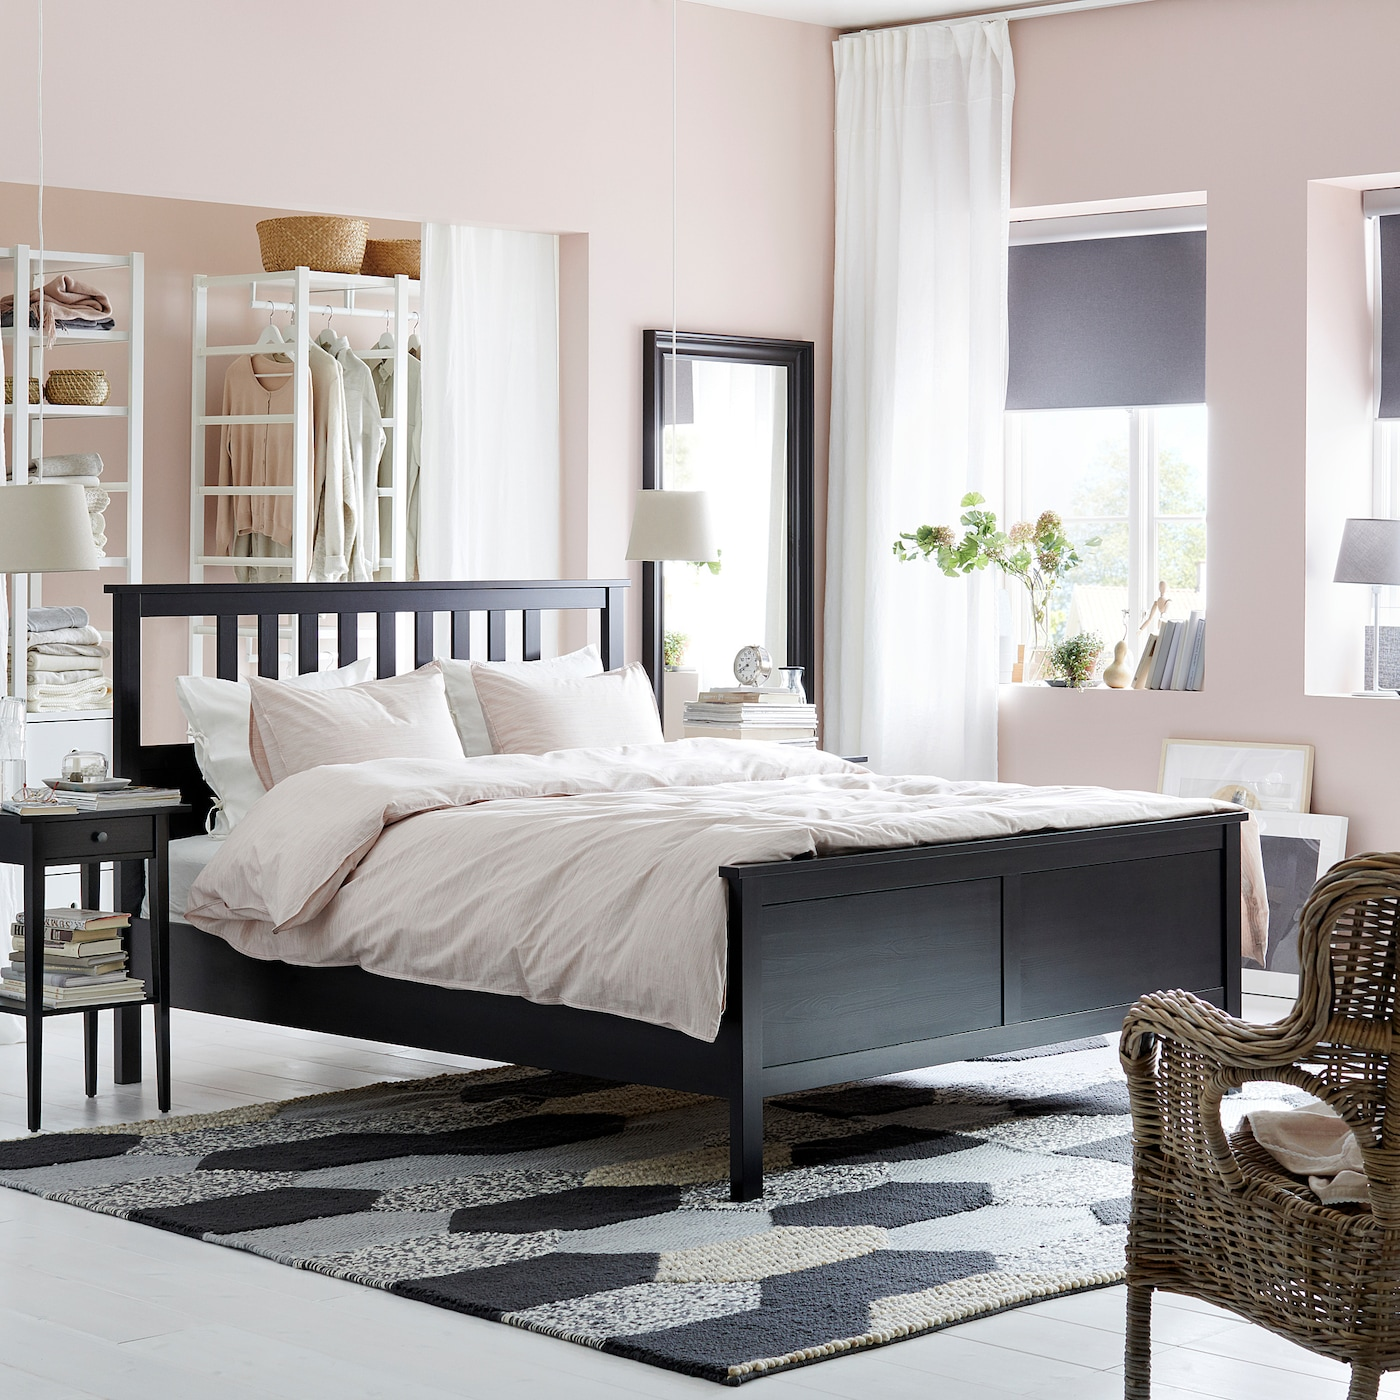 Ikea Hemnes Bed Frame Adjule Sides Allow You To Use Mattresses Of Diffe Thicknesses